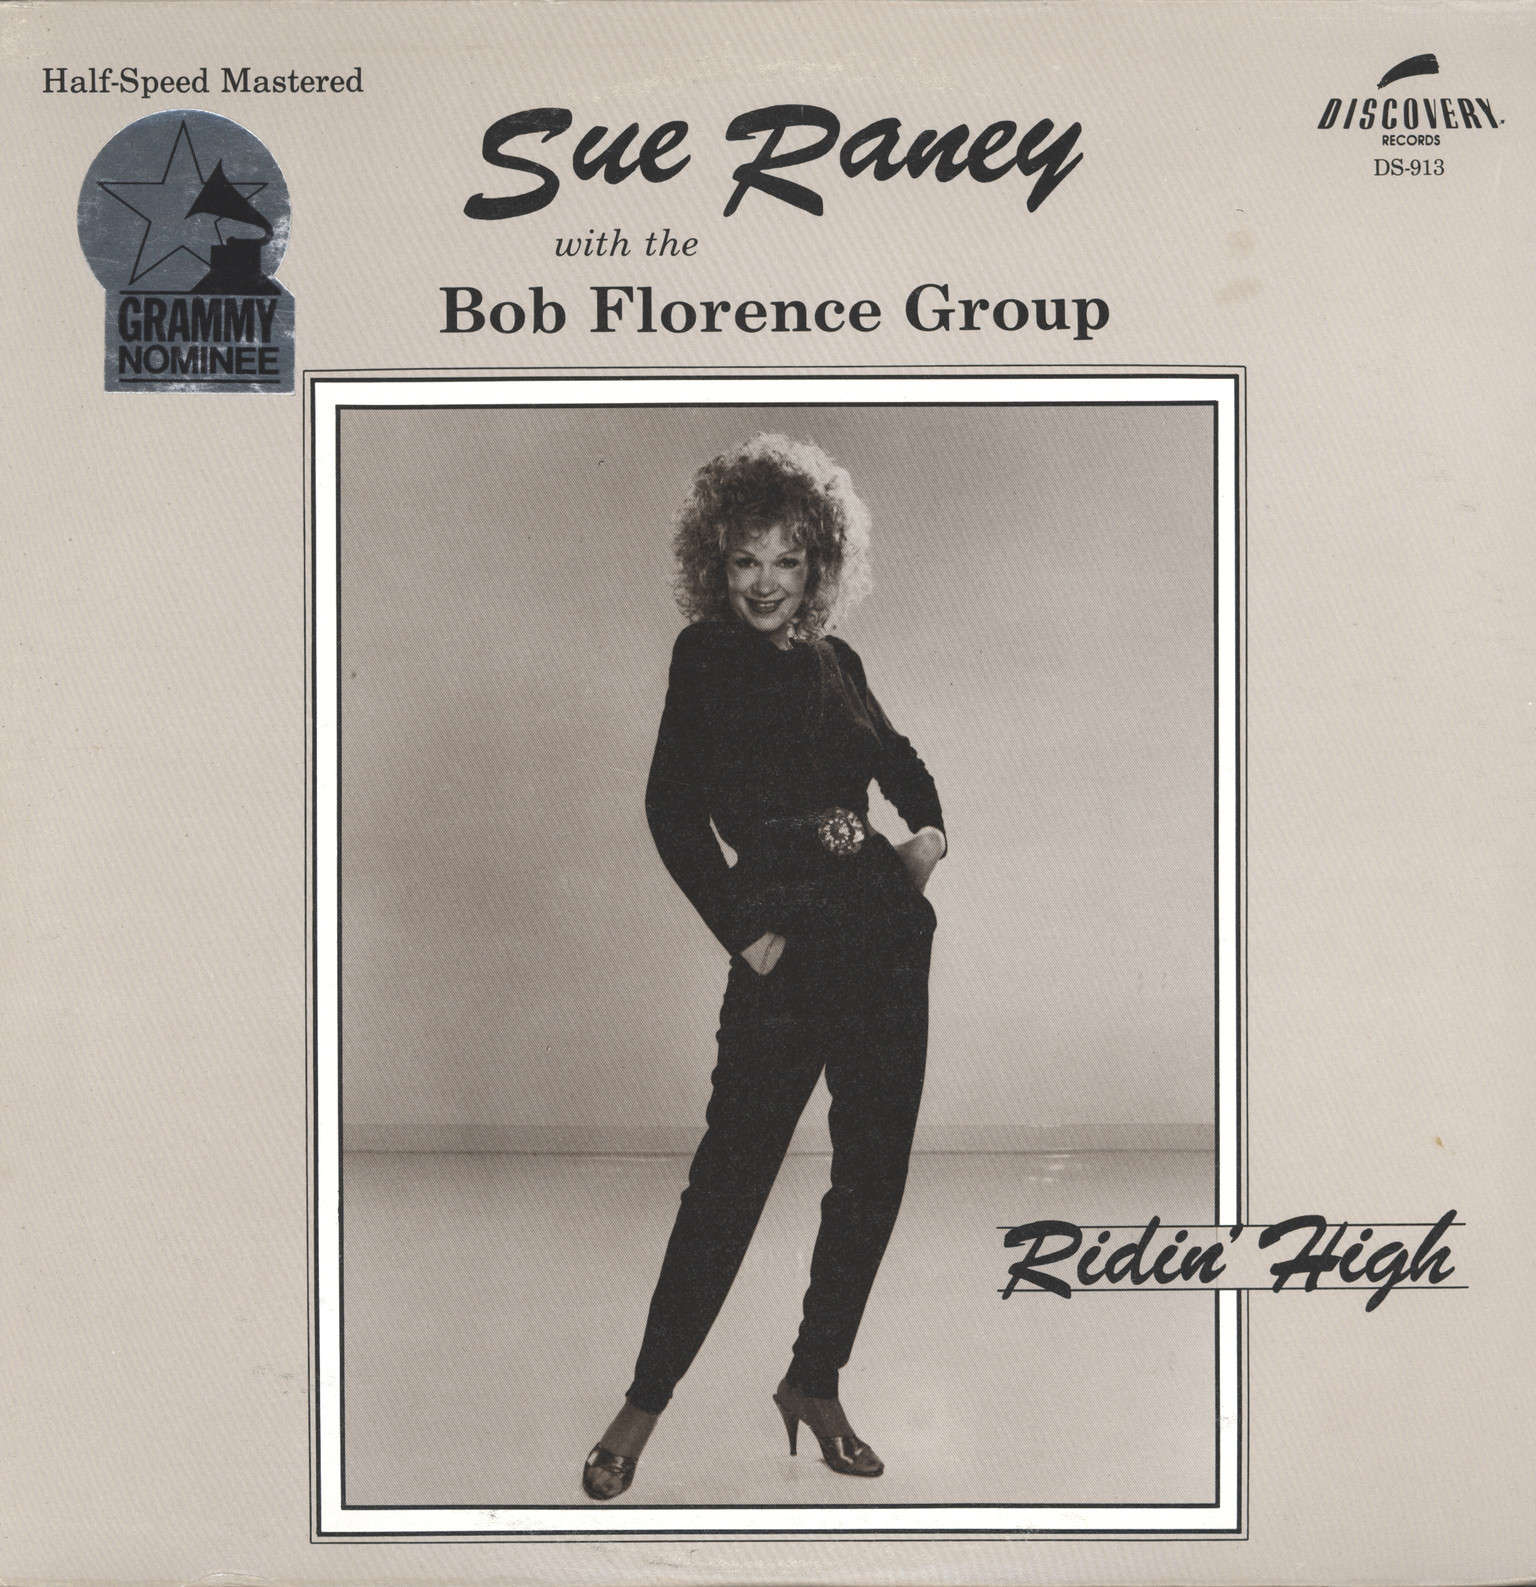 Raney With the Bob Florence Group, Sue: Ridin' High, LP (Vinyl)